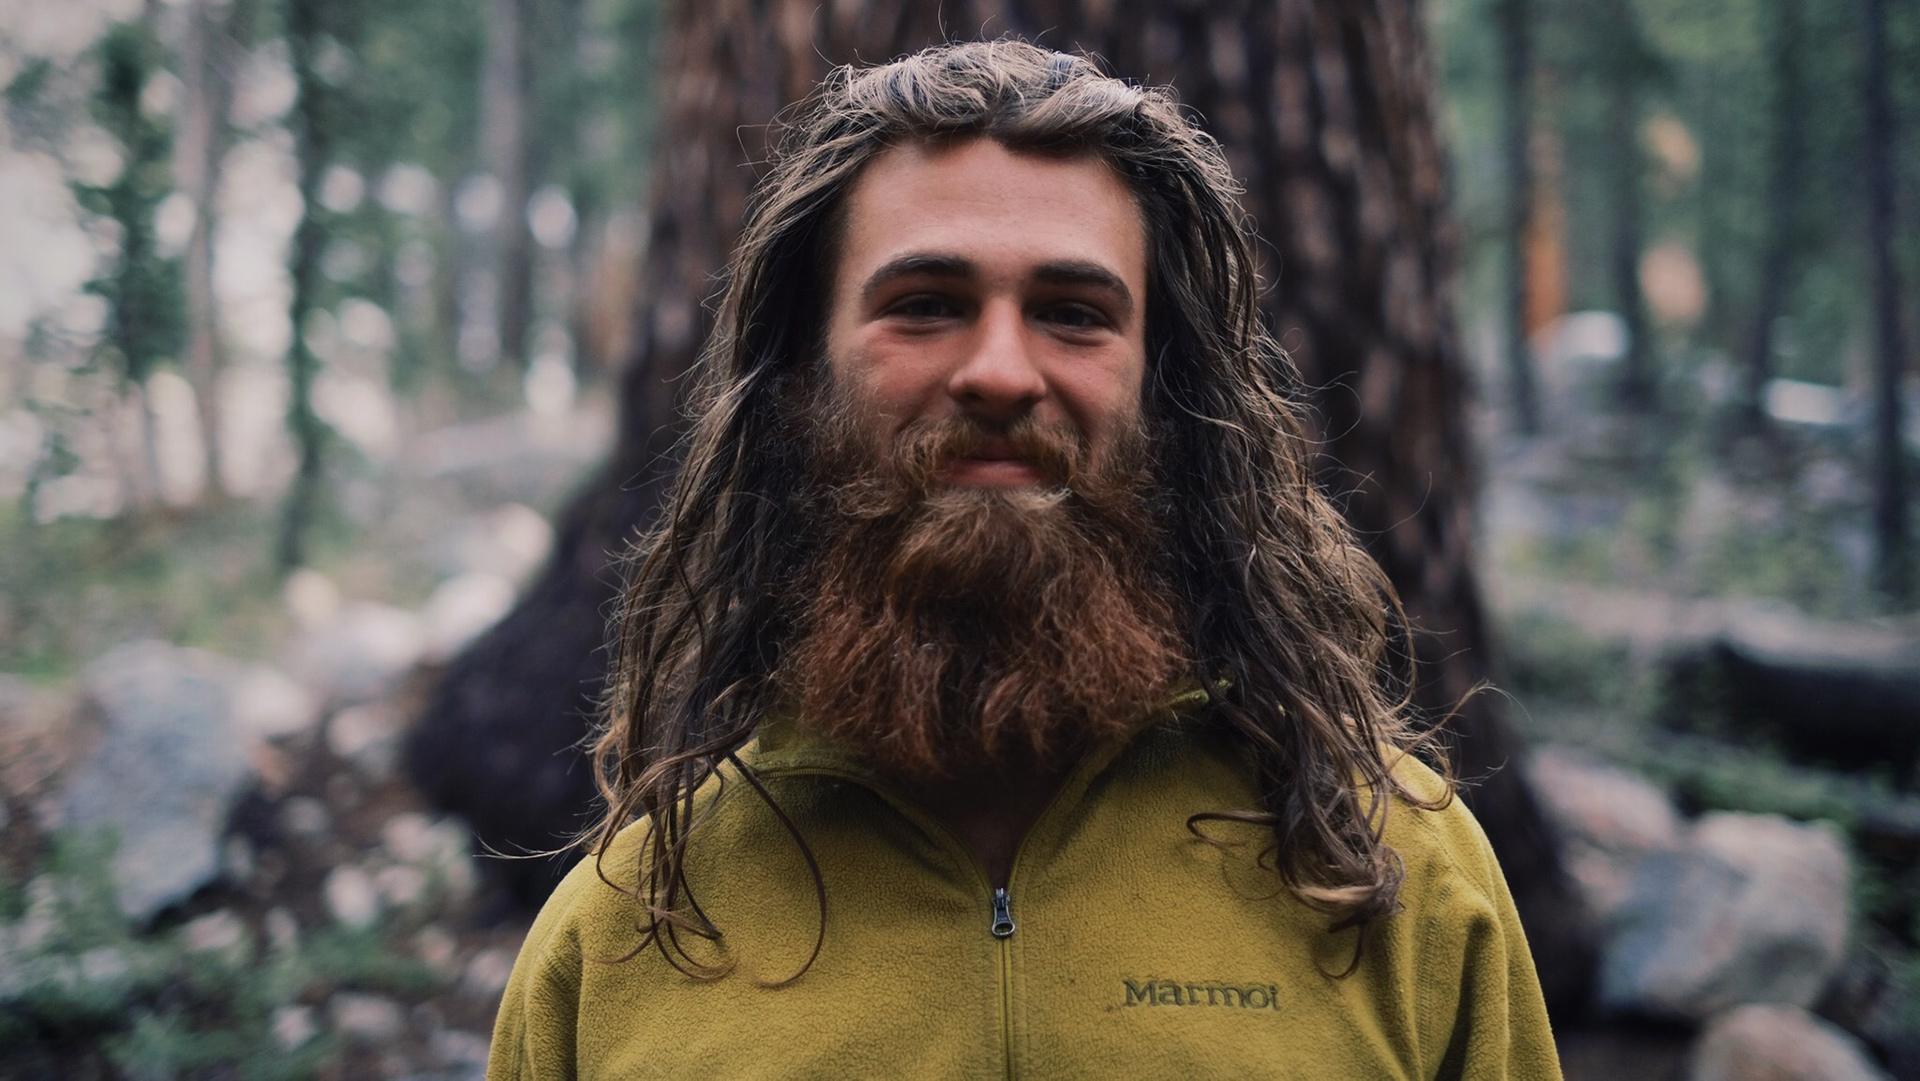 """Chris Pickering donated this photo of his friend Cap'n Crunch. And he wrote this great caption, """"This is Cap'n Crunch. He epitomizes the thru hiker in my opinion. Even swamped in mosquitos, he was still grinning ear to ear. We thru hiked the A.T. in 2012 not getting a chance to meet, only hearing of one another. And here, on the other side of the country in the middle of the forest surrounded by trees as thick as cars we were reunited much like a family would be. The thru hiking community is a tight knit group of people who are passionate about living and the relationships they make along the way. Our goal is not to run away, rather we are sprinting towards a lifestyle of exploration and the unknown. Why live in one place? There is far too much to see, learn, and experience to sit in one place for too long. Therefore, we hike."""""""